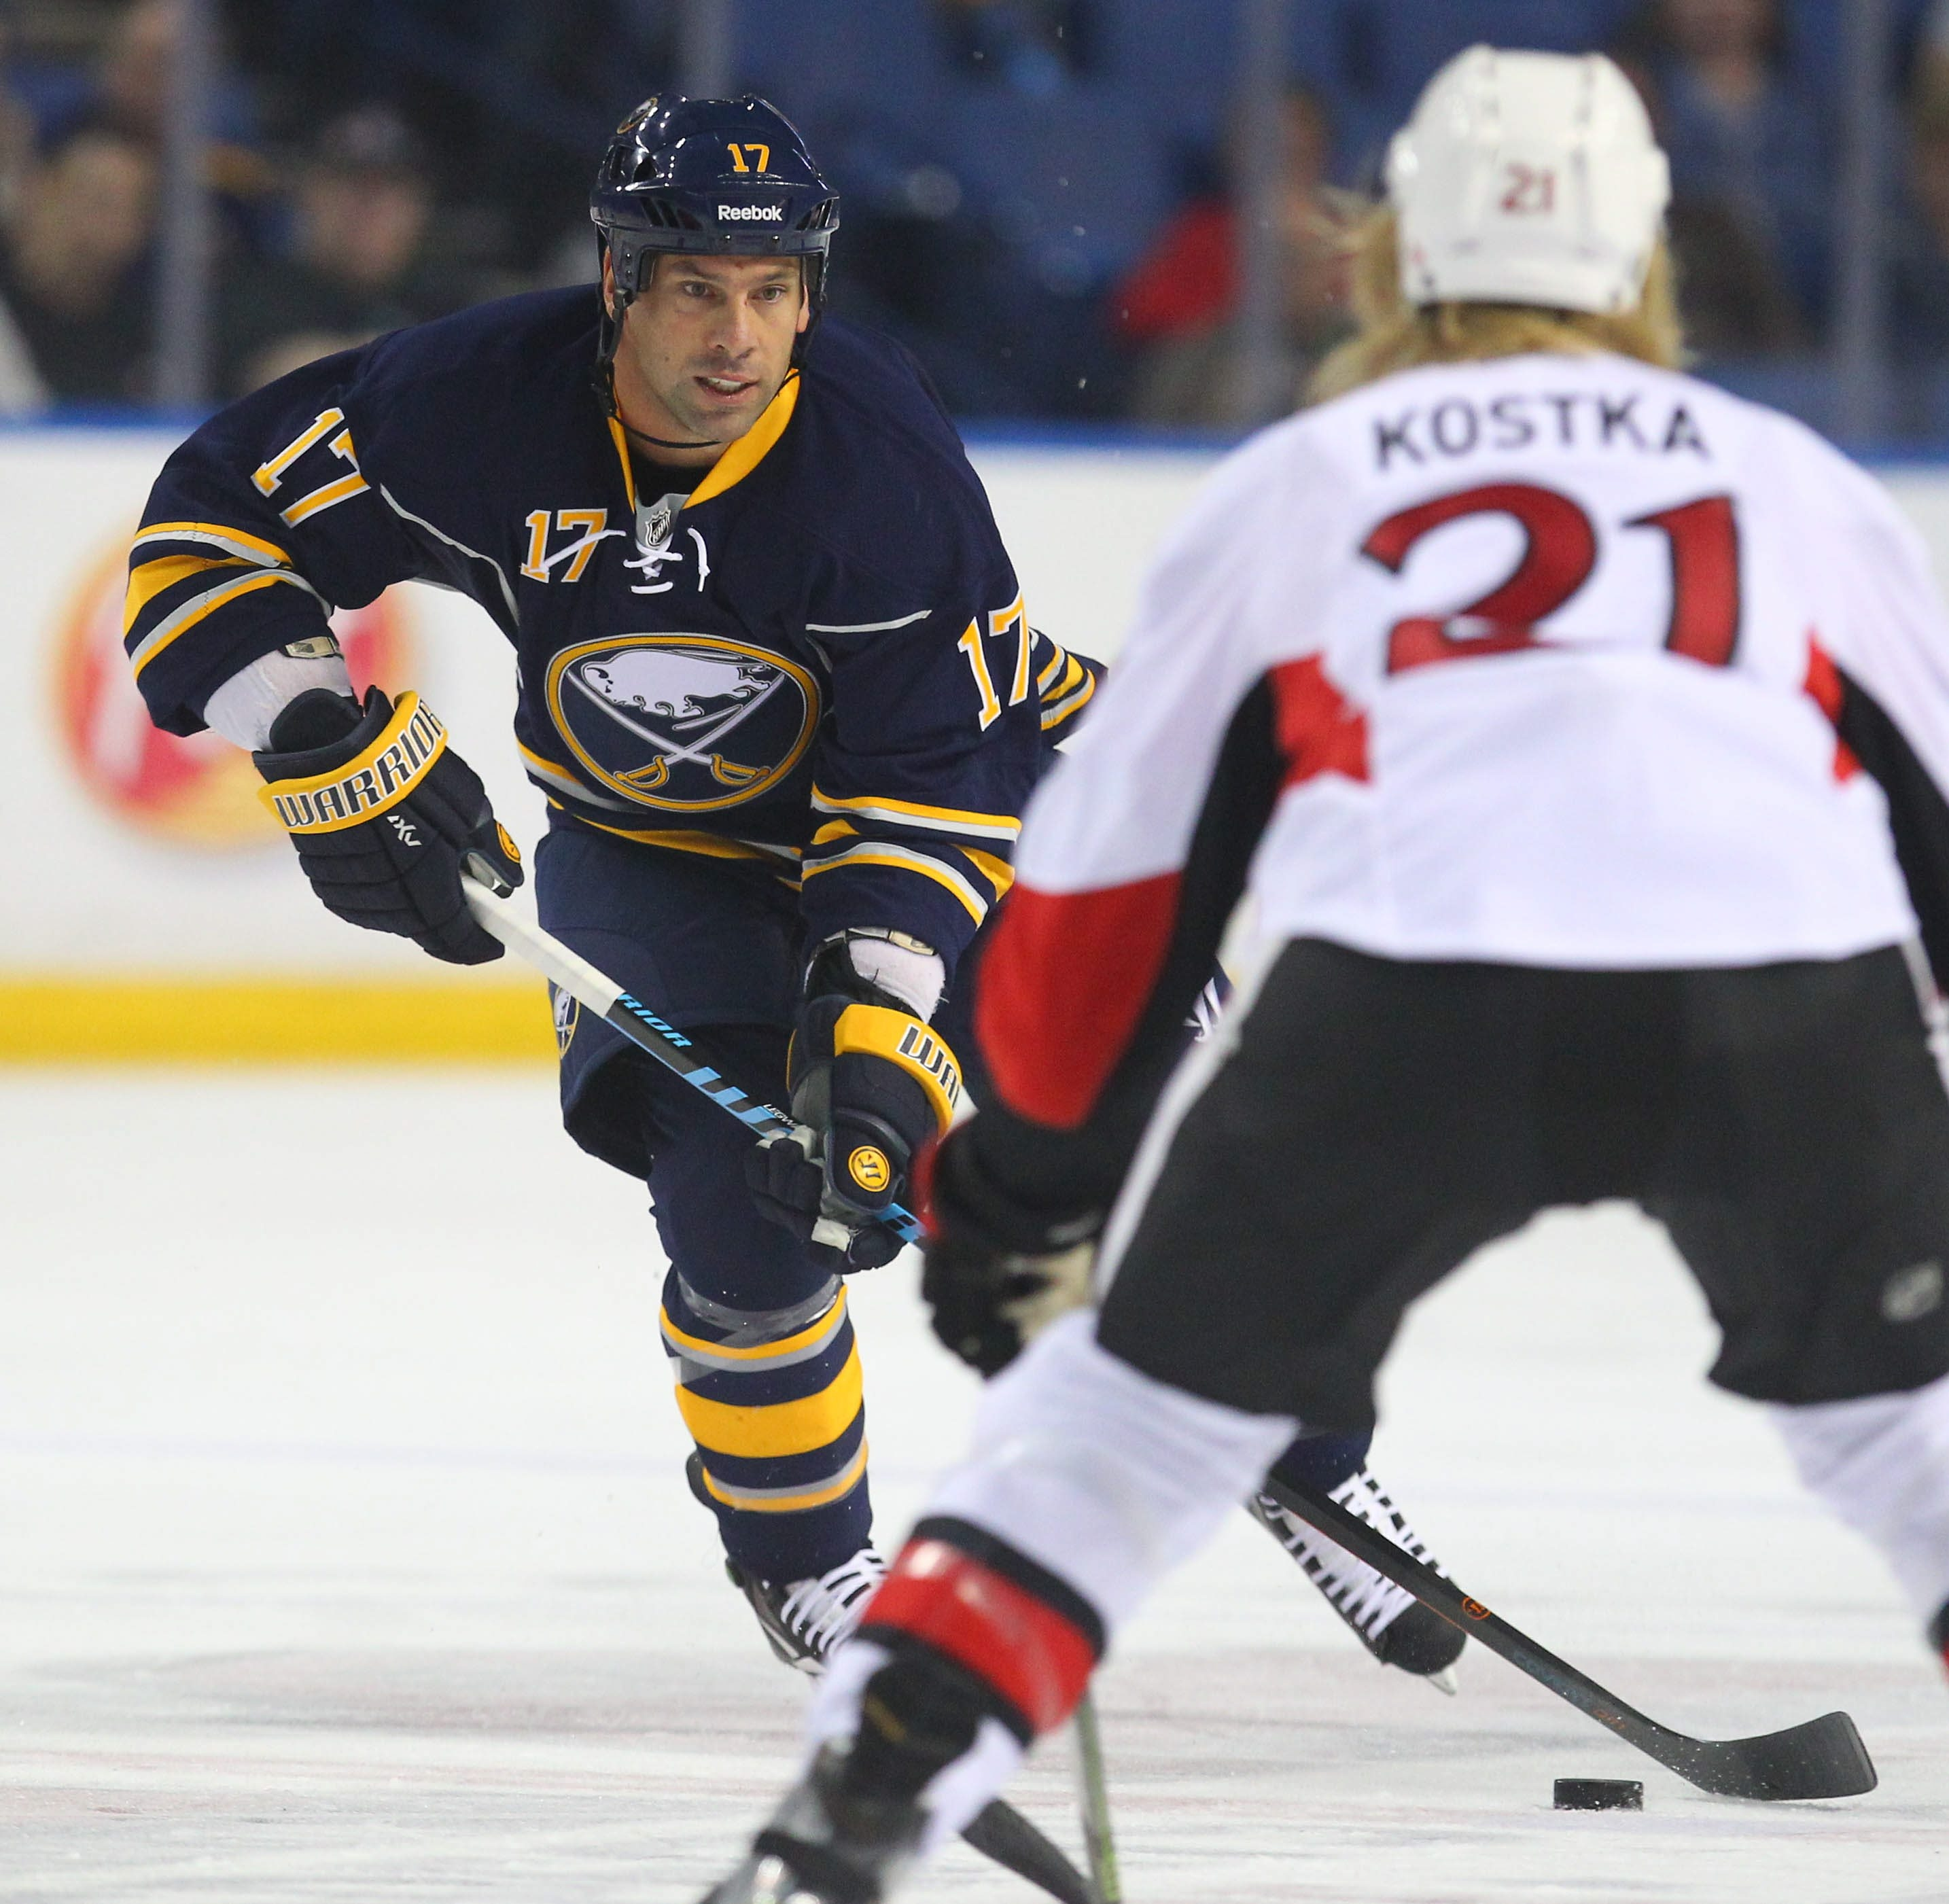 Sabres veteran forward David Legwand loves imparting hockey wisdom to his younger teammates such as Jack Eichel and Sam Reinhart.